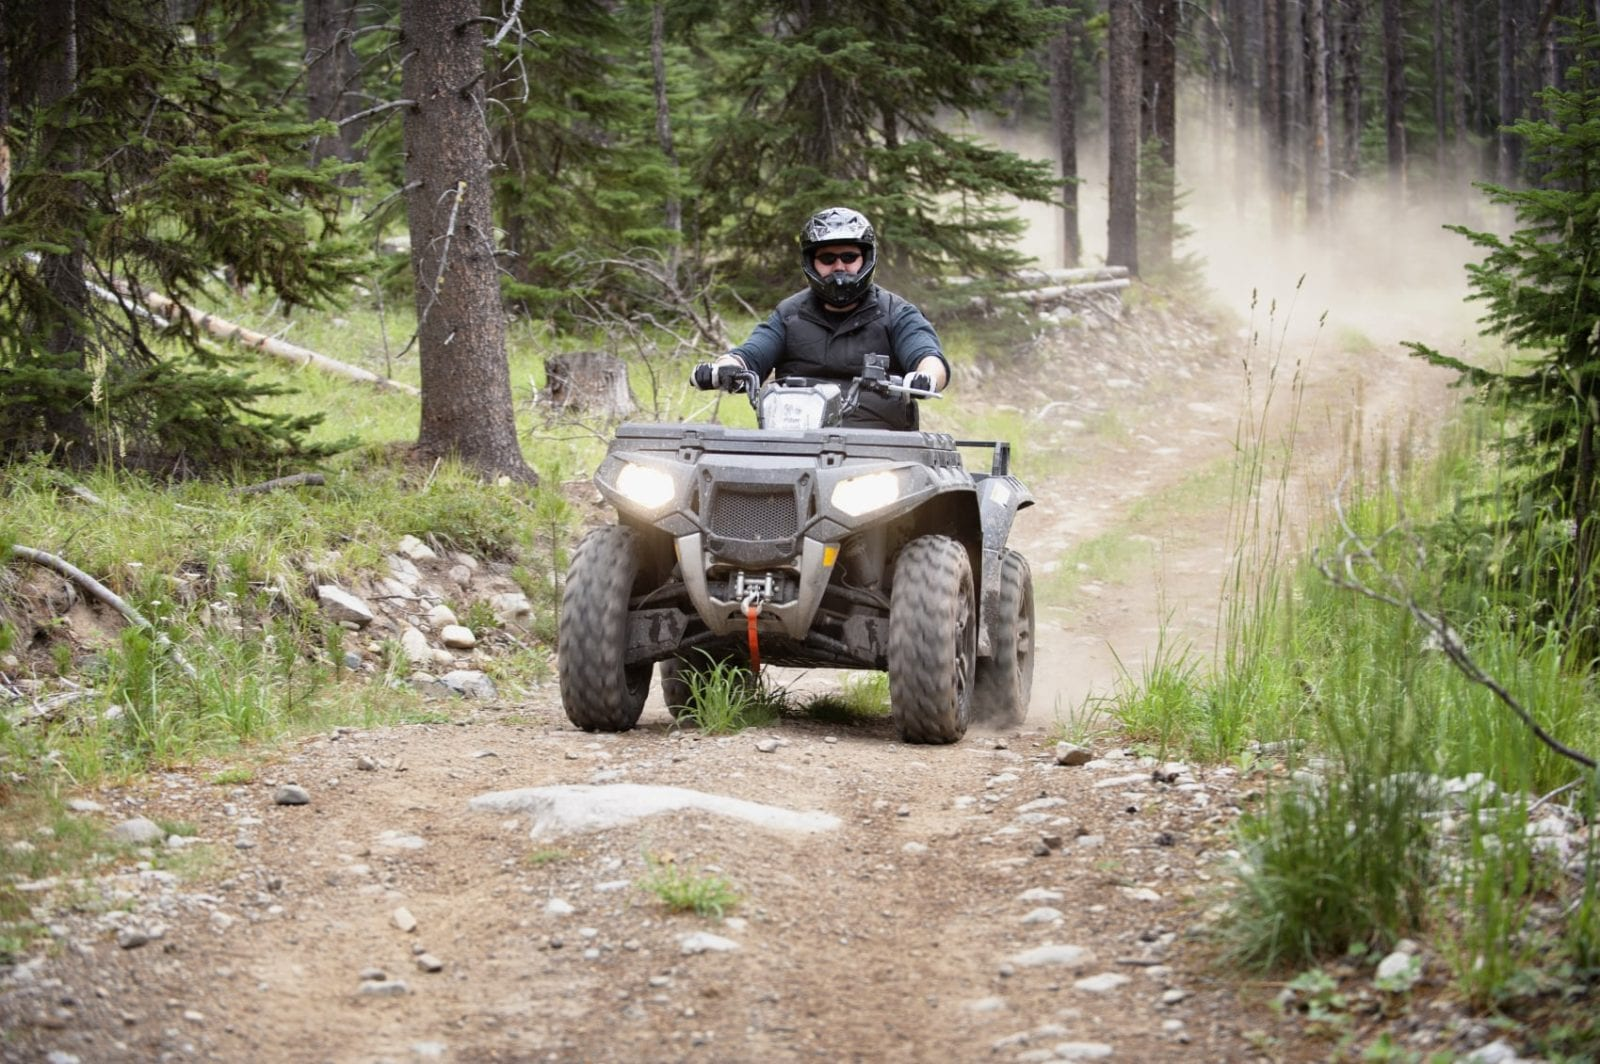 Odessa Personal Injury Lawyer Discusses ATV Risks